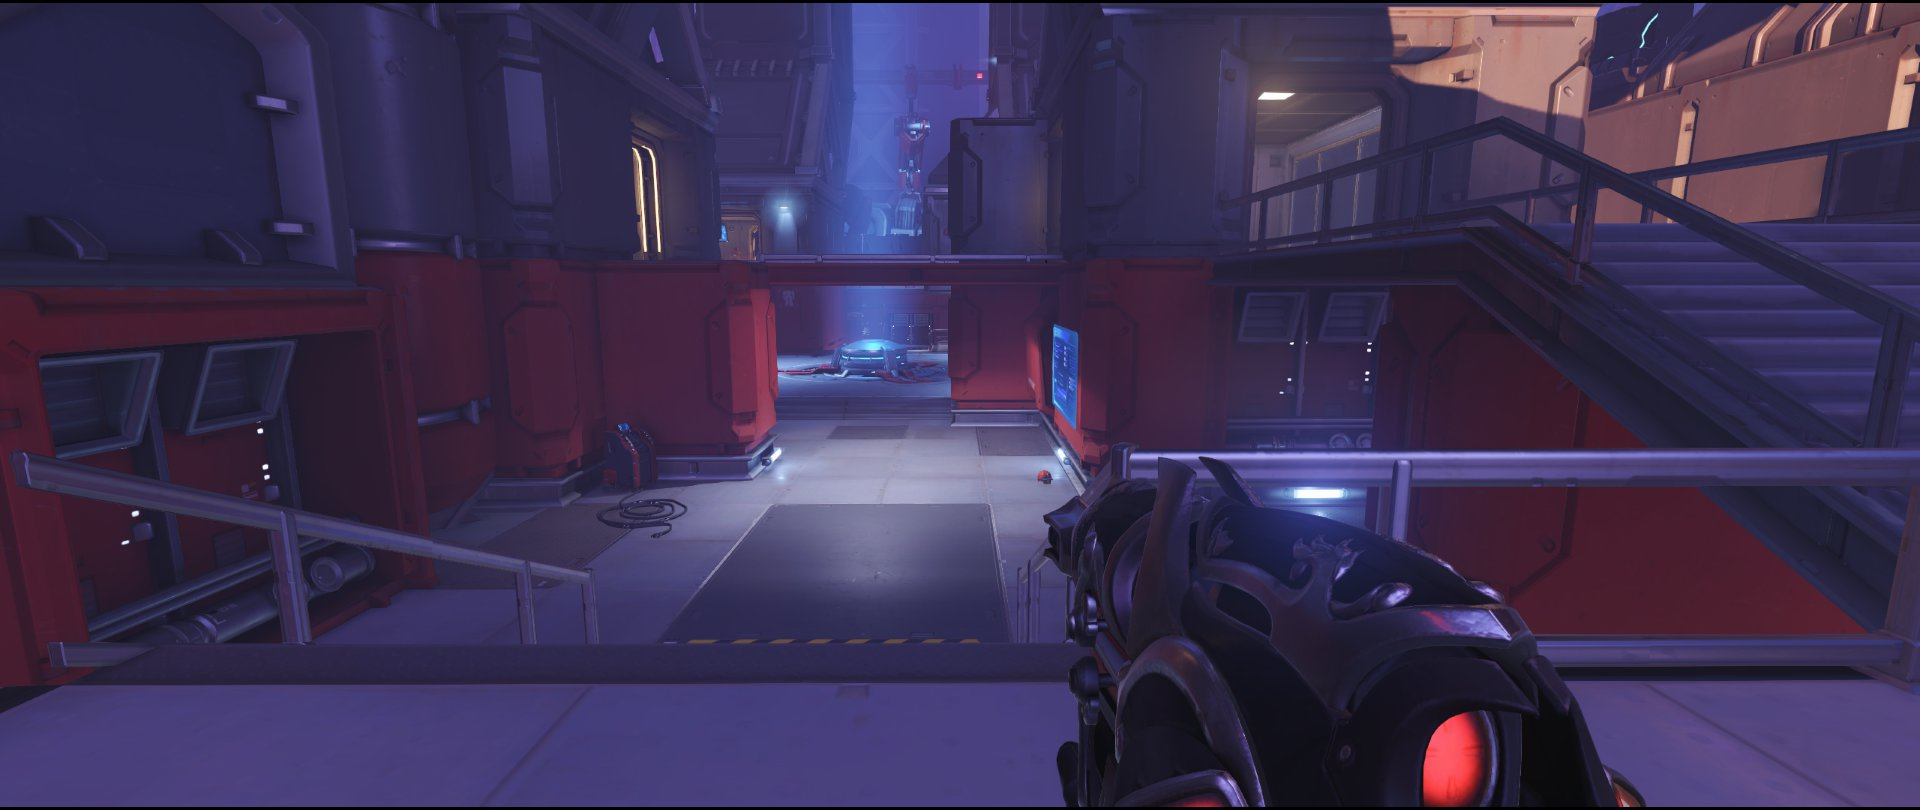 Right side flank view attack sniping spot Widowmaker Volskaya Industries Overwatch.jpg